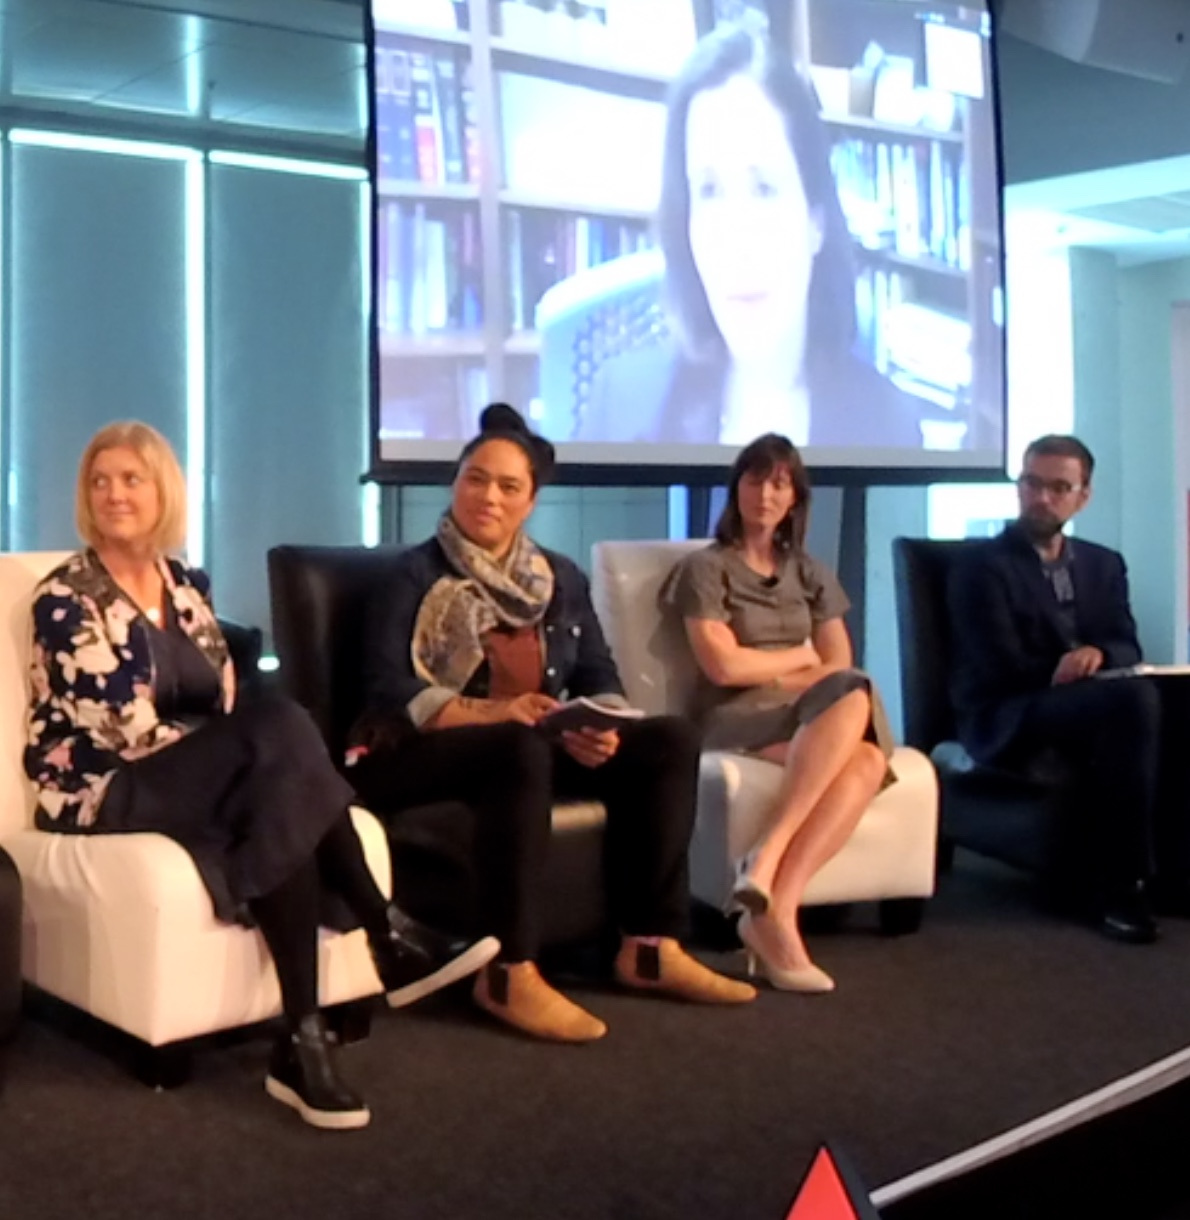 Artwork for Impact and Social Enterprise, a live panel discussion at Te Papa moderated by Steven Moe with Louise Aitken, Dana Brakman Reiser, Holly Norton, Kaye Maree Dunn and Andrew Phillips